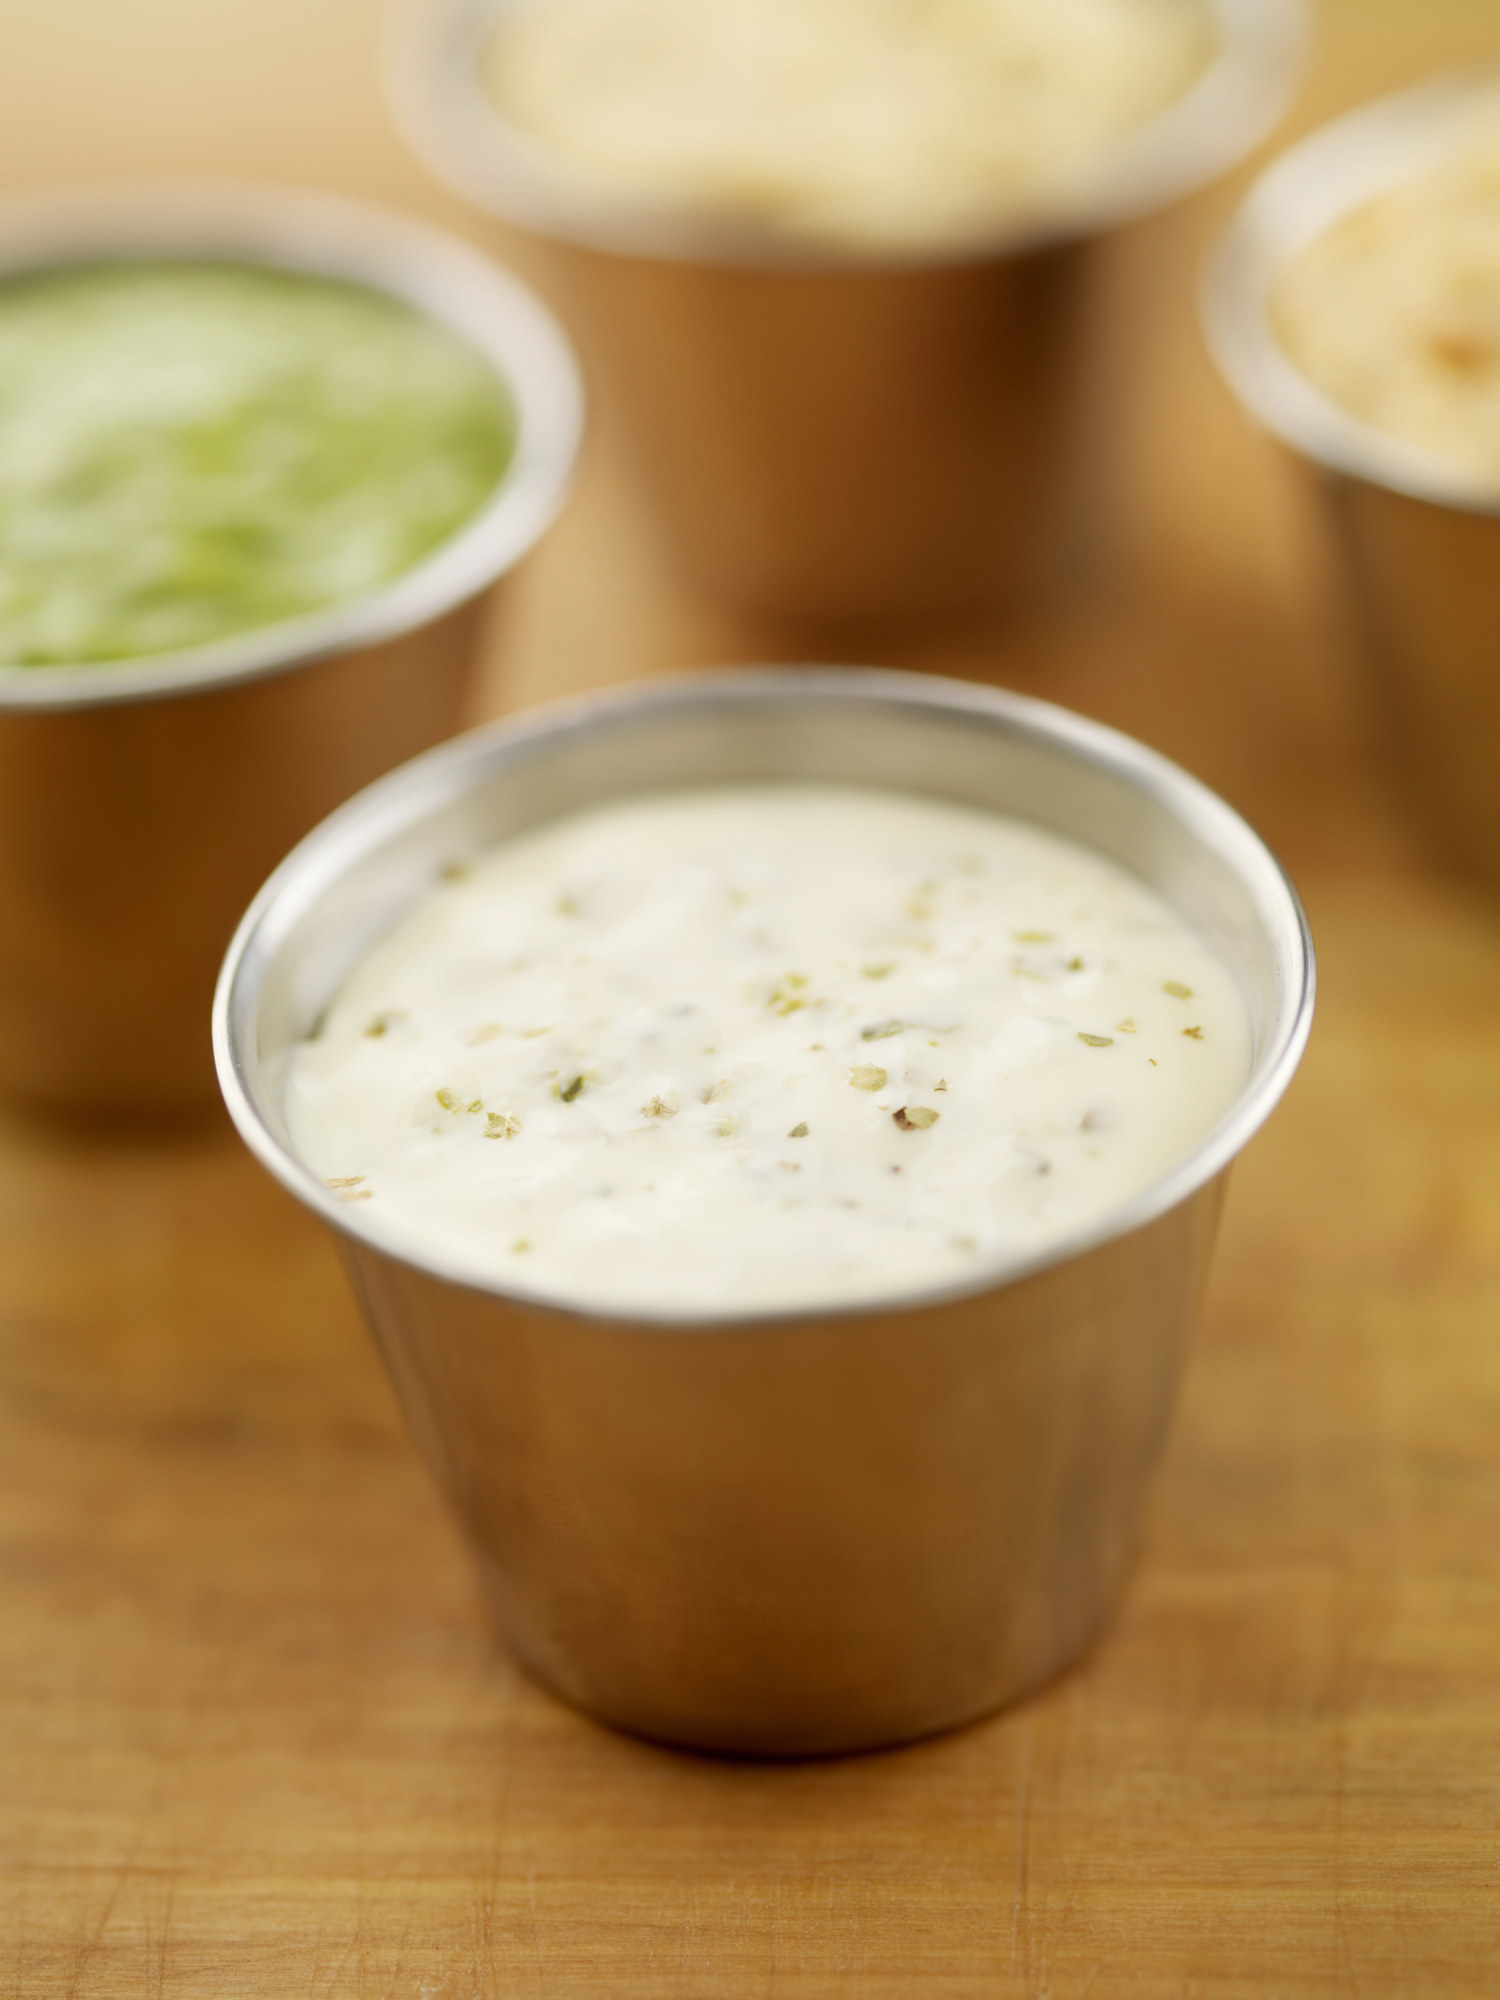 A cup of ranch dressing.